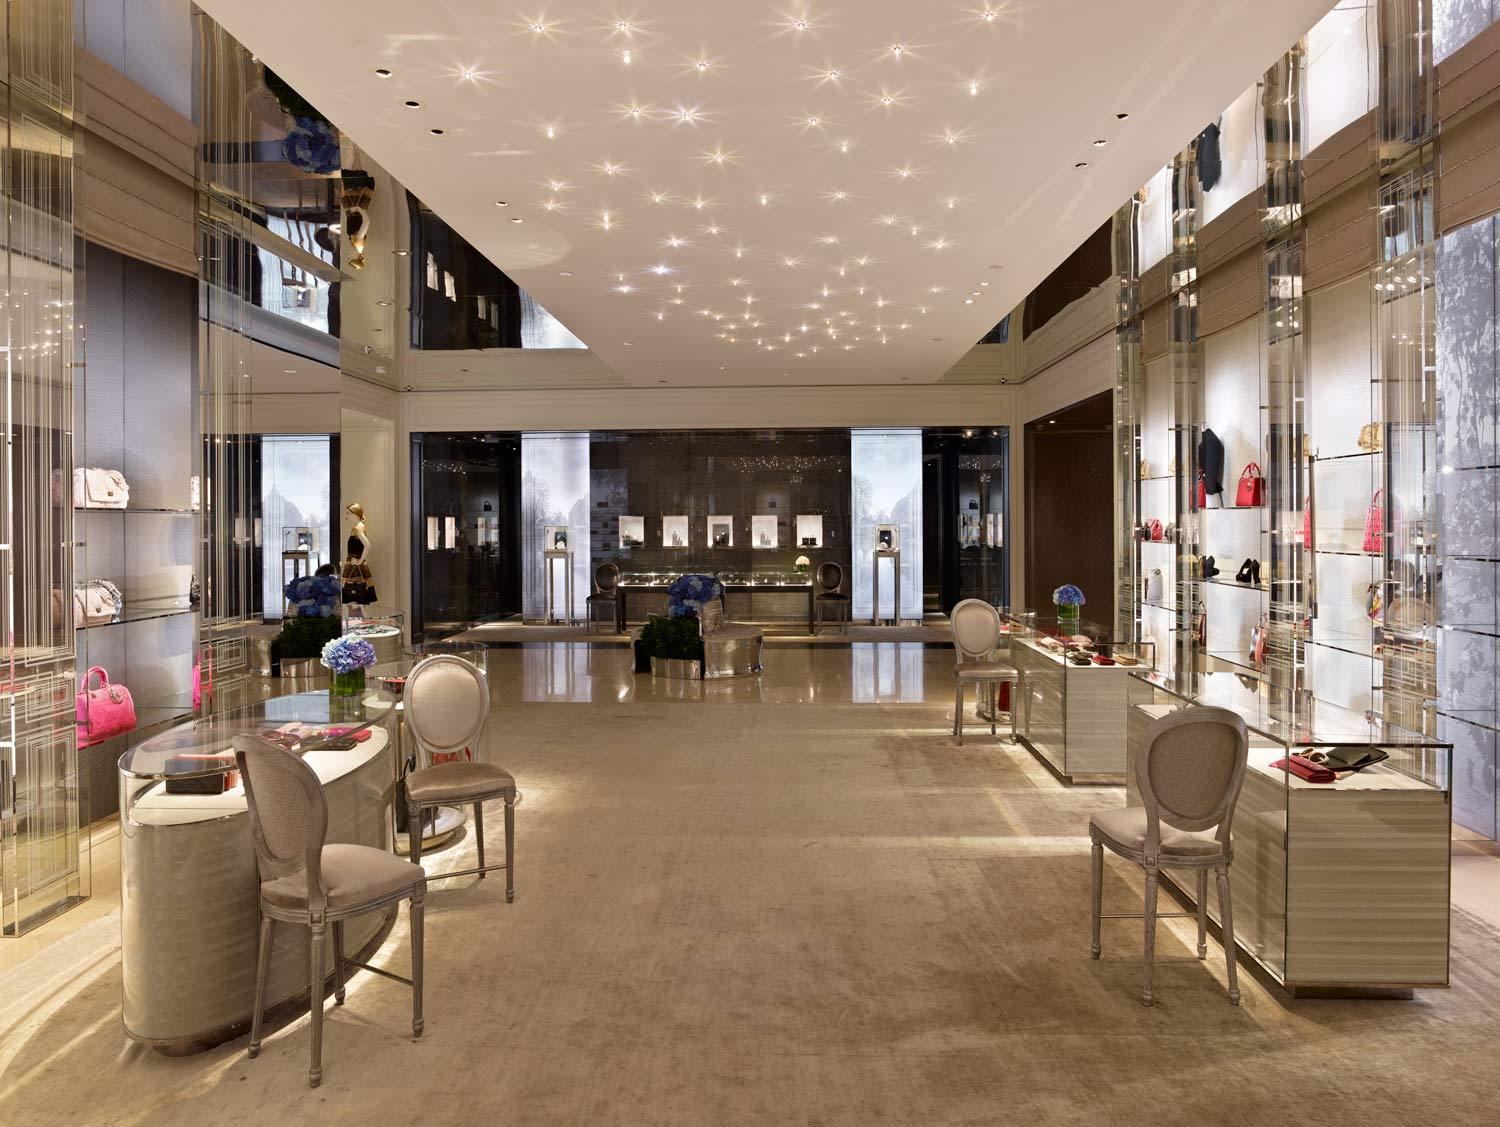 Christian dior boutique beverly hills stellar interior for Boutique interior design